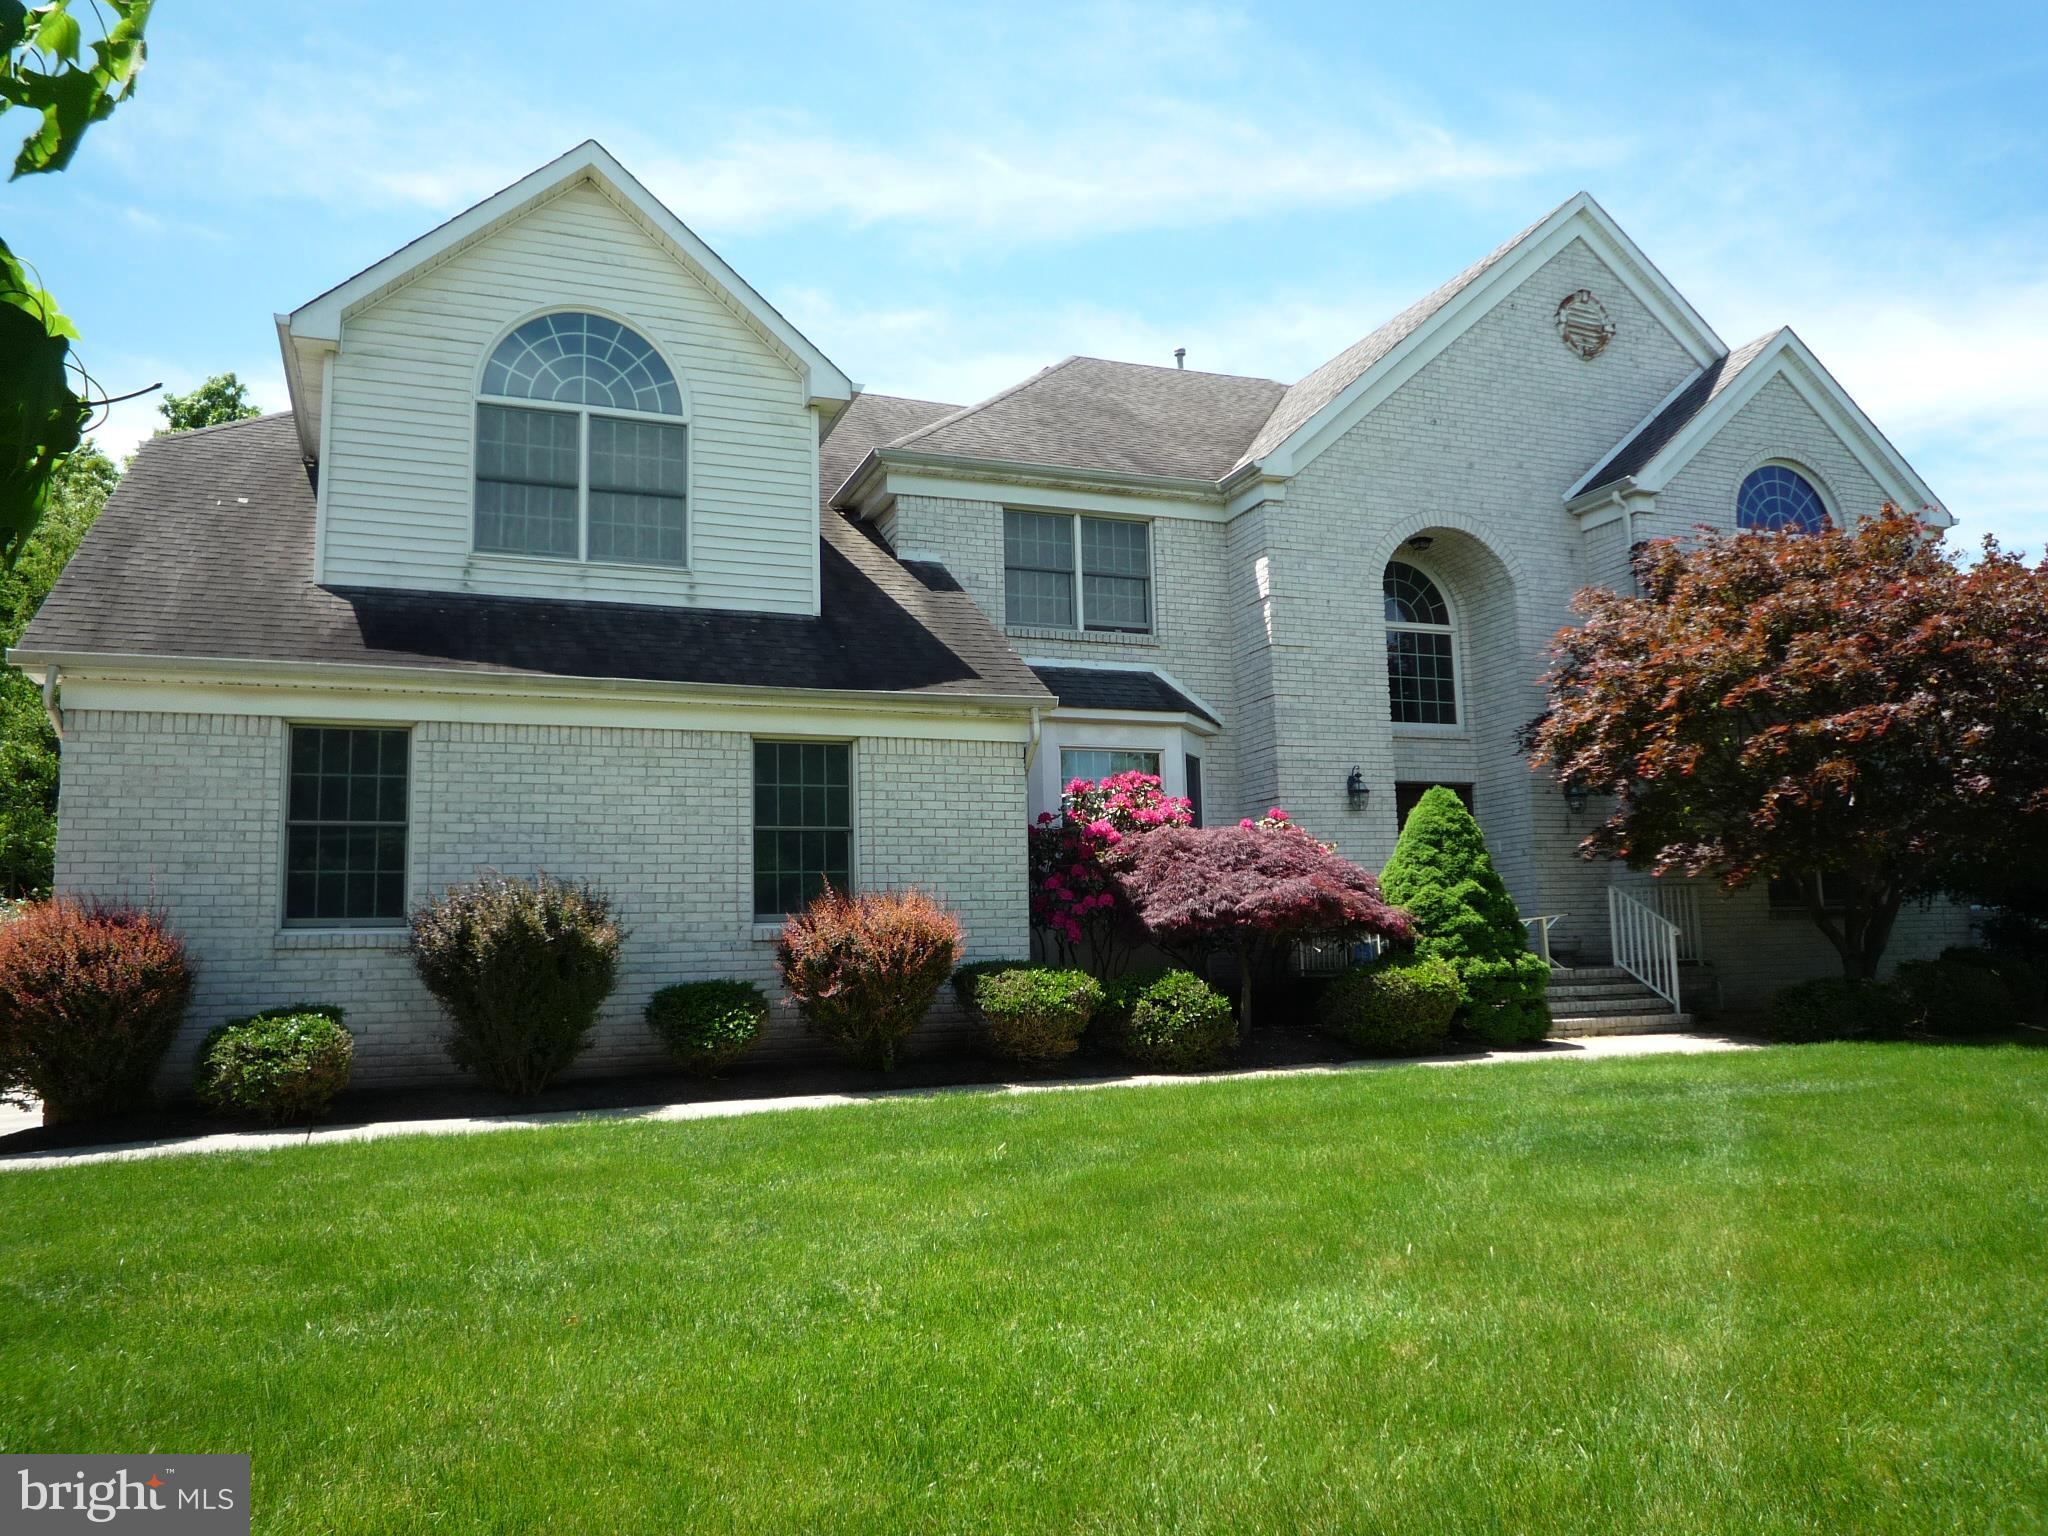 11 FORD COURT, BELLE MEAD, NJ 08502